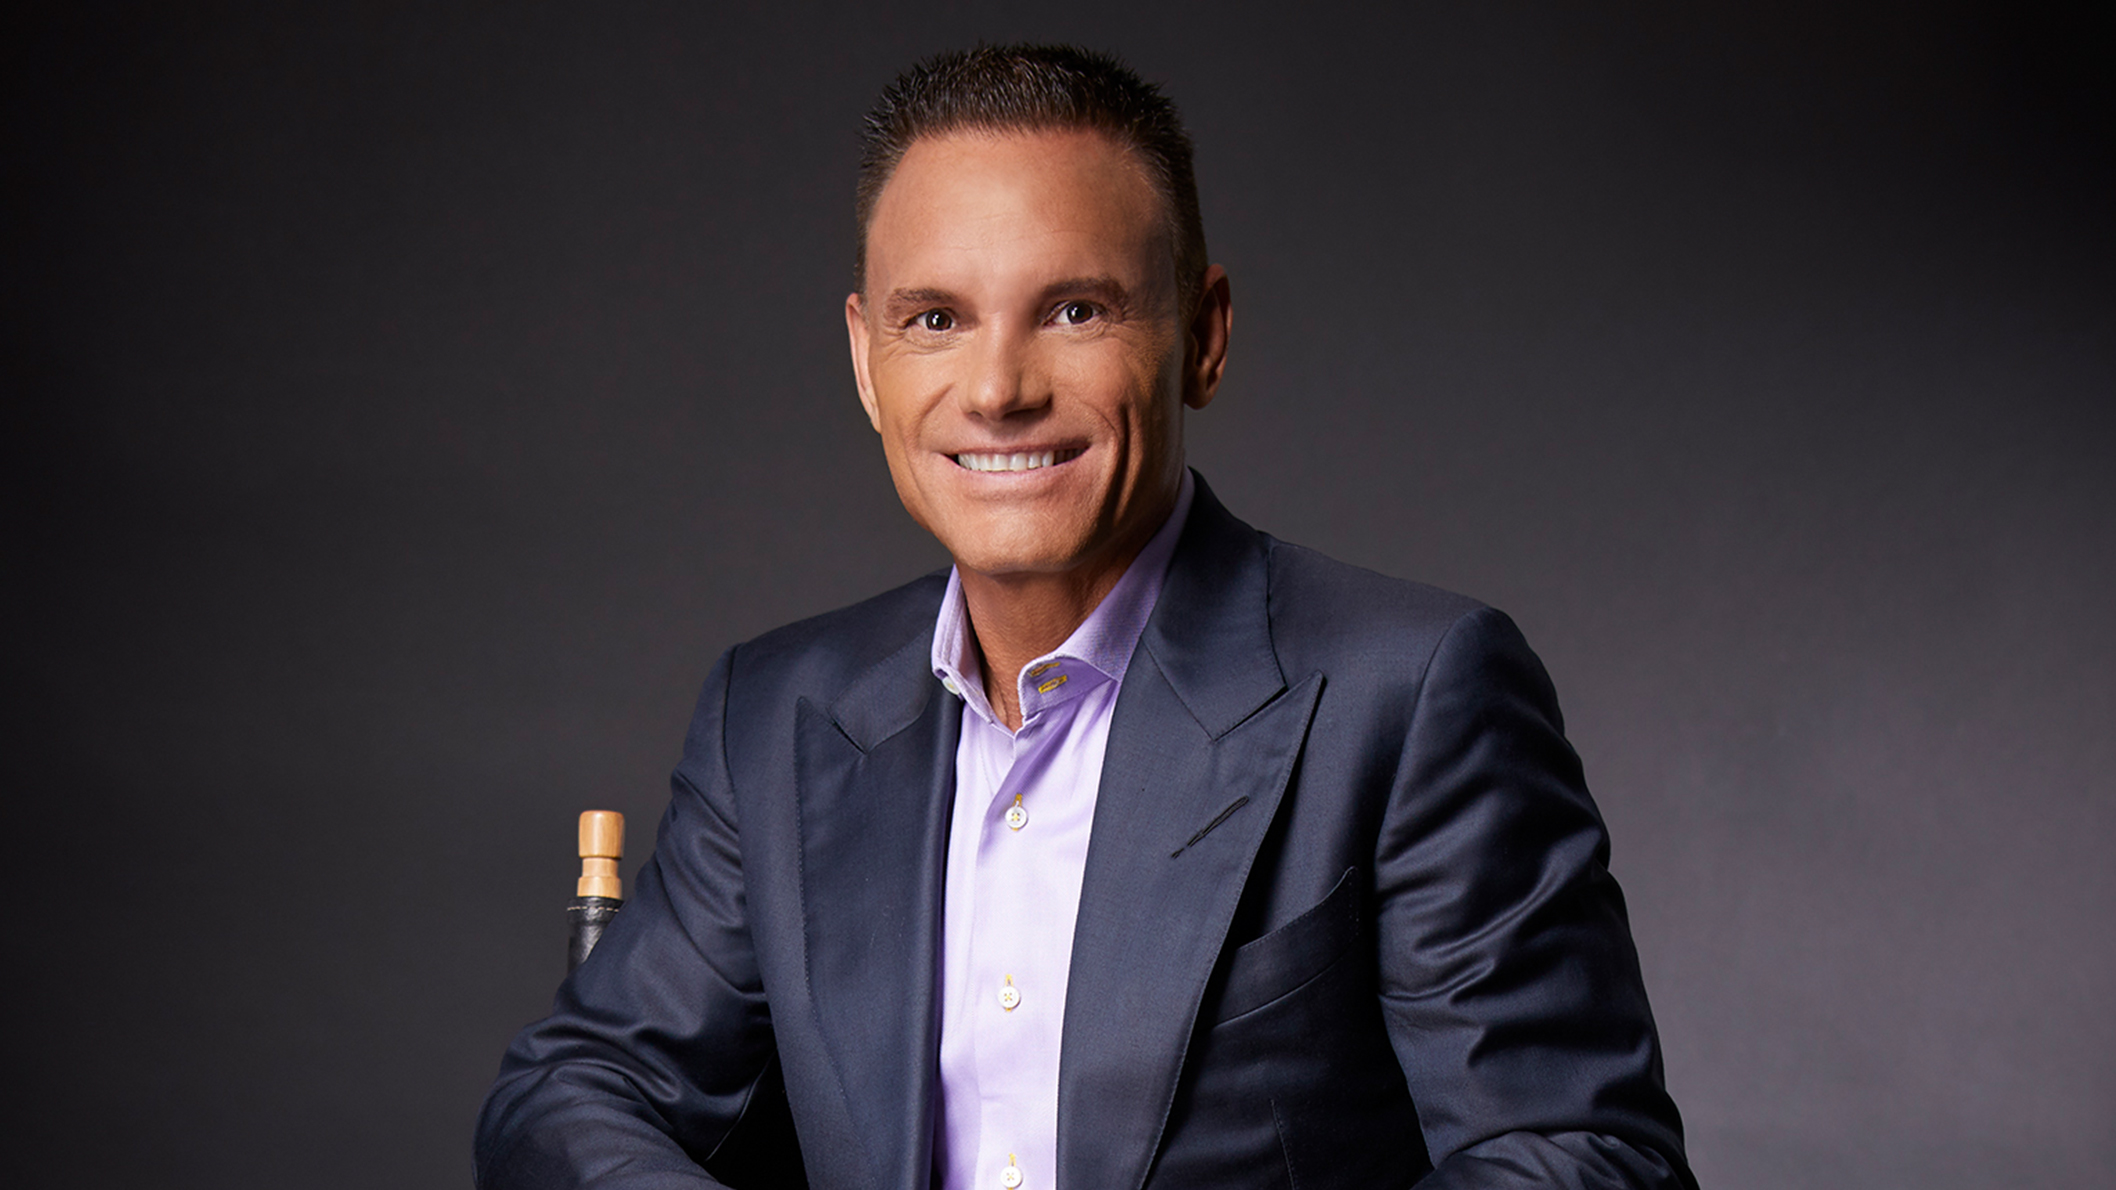 Headshot of Kevin Harrington.